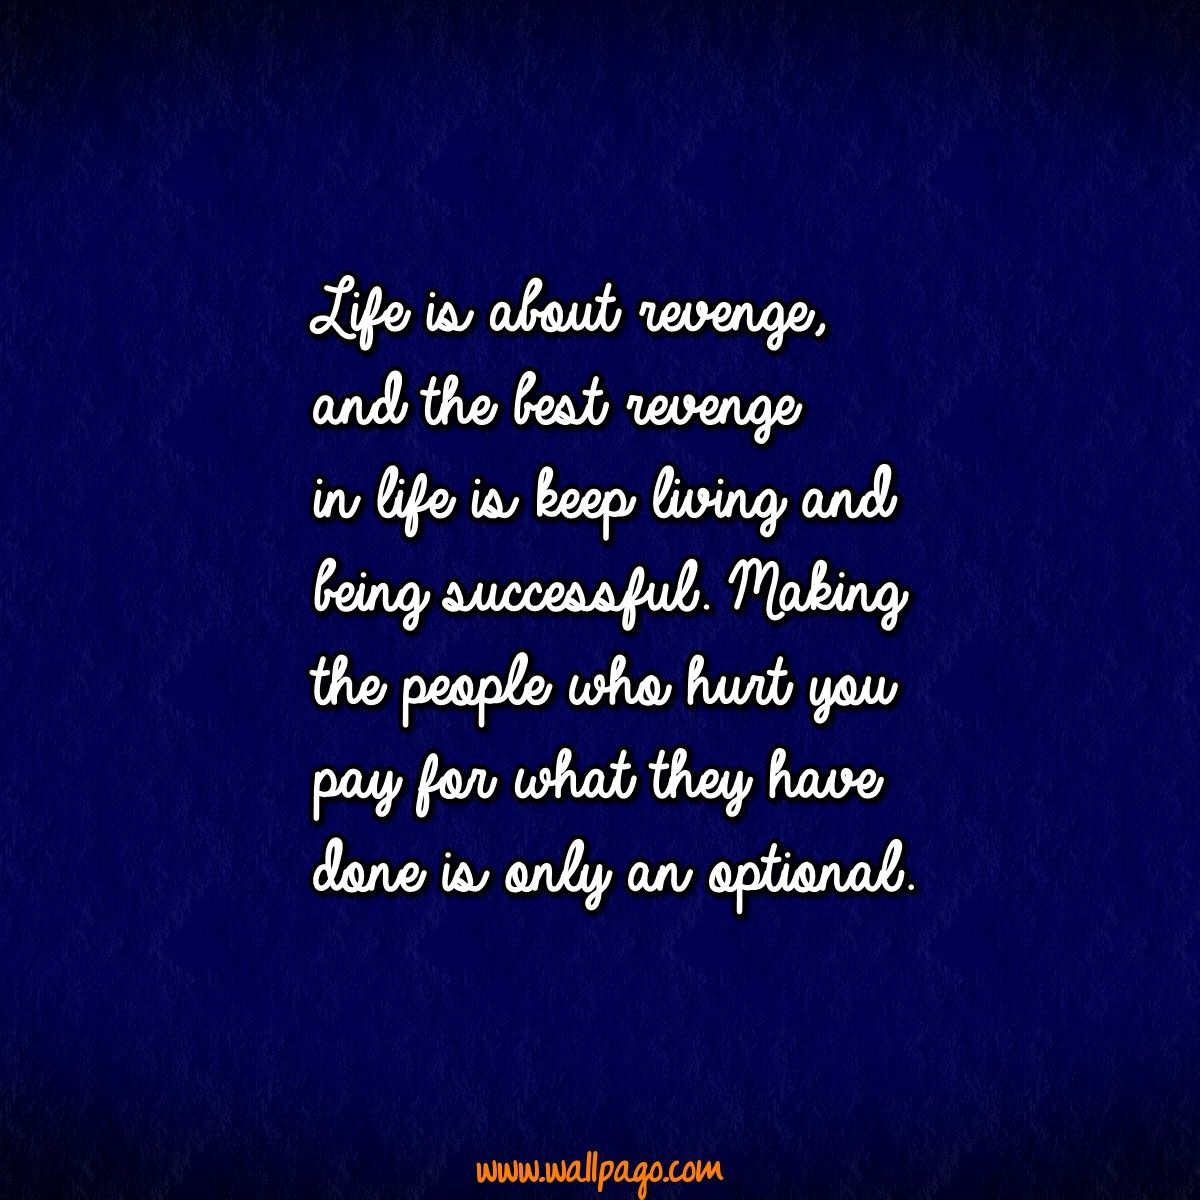 Quotes About Being Successful In Life Quote About Revenge  Life Is About Revenge And The Best Revenge